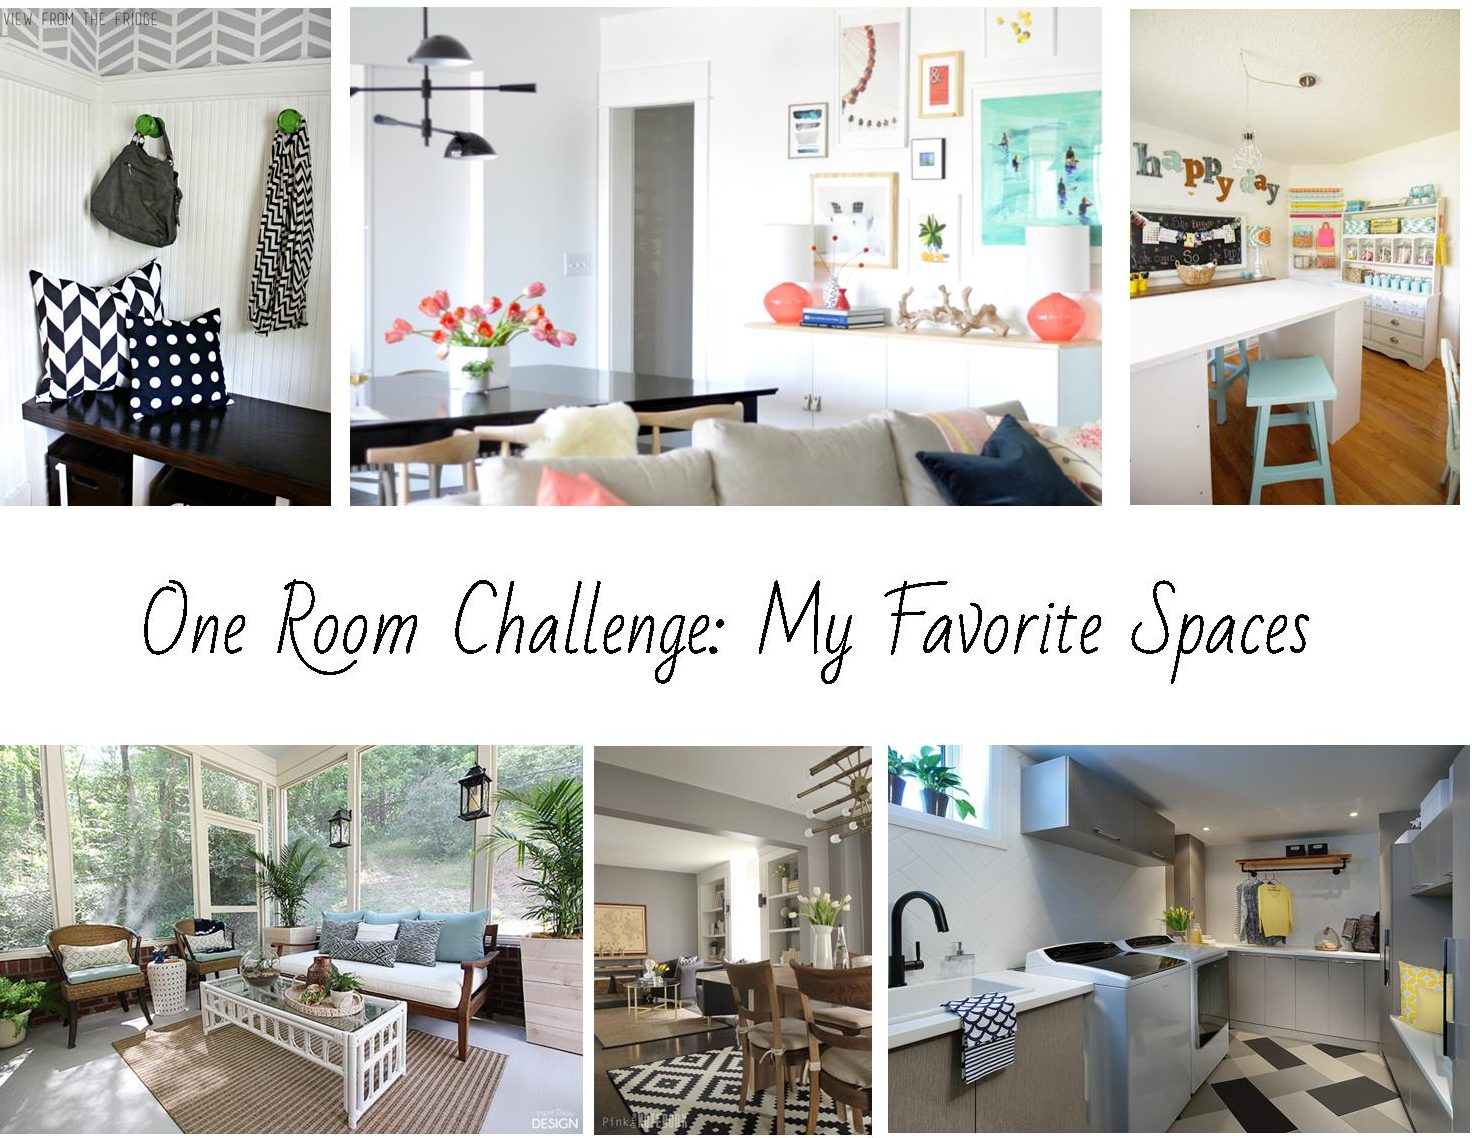 One Room Challenge: My Favorite Spaces